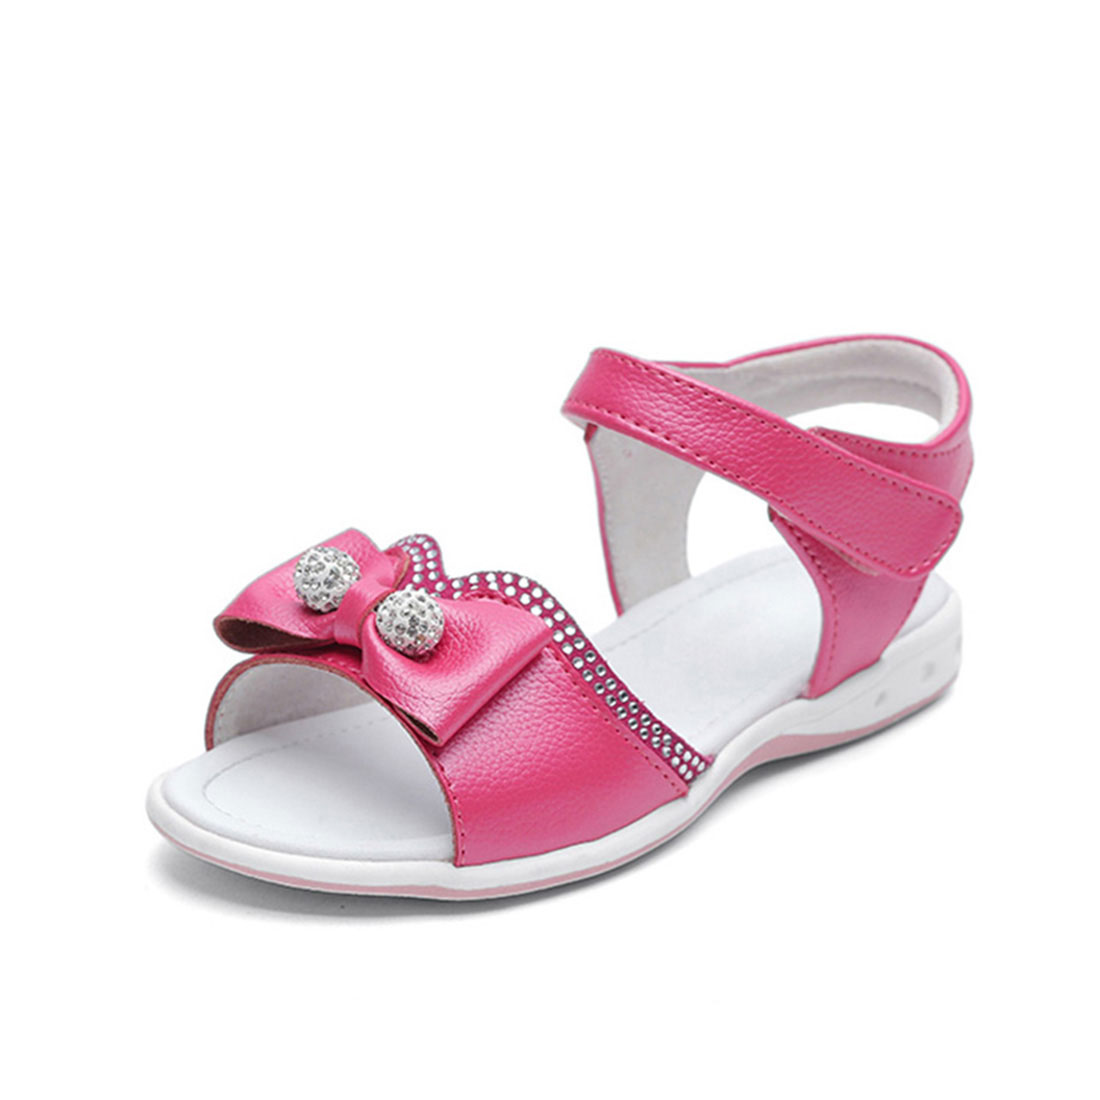 Real leather fuchsia flat fashion 2018 summer with diamante and bow kids sandals